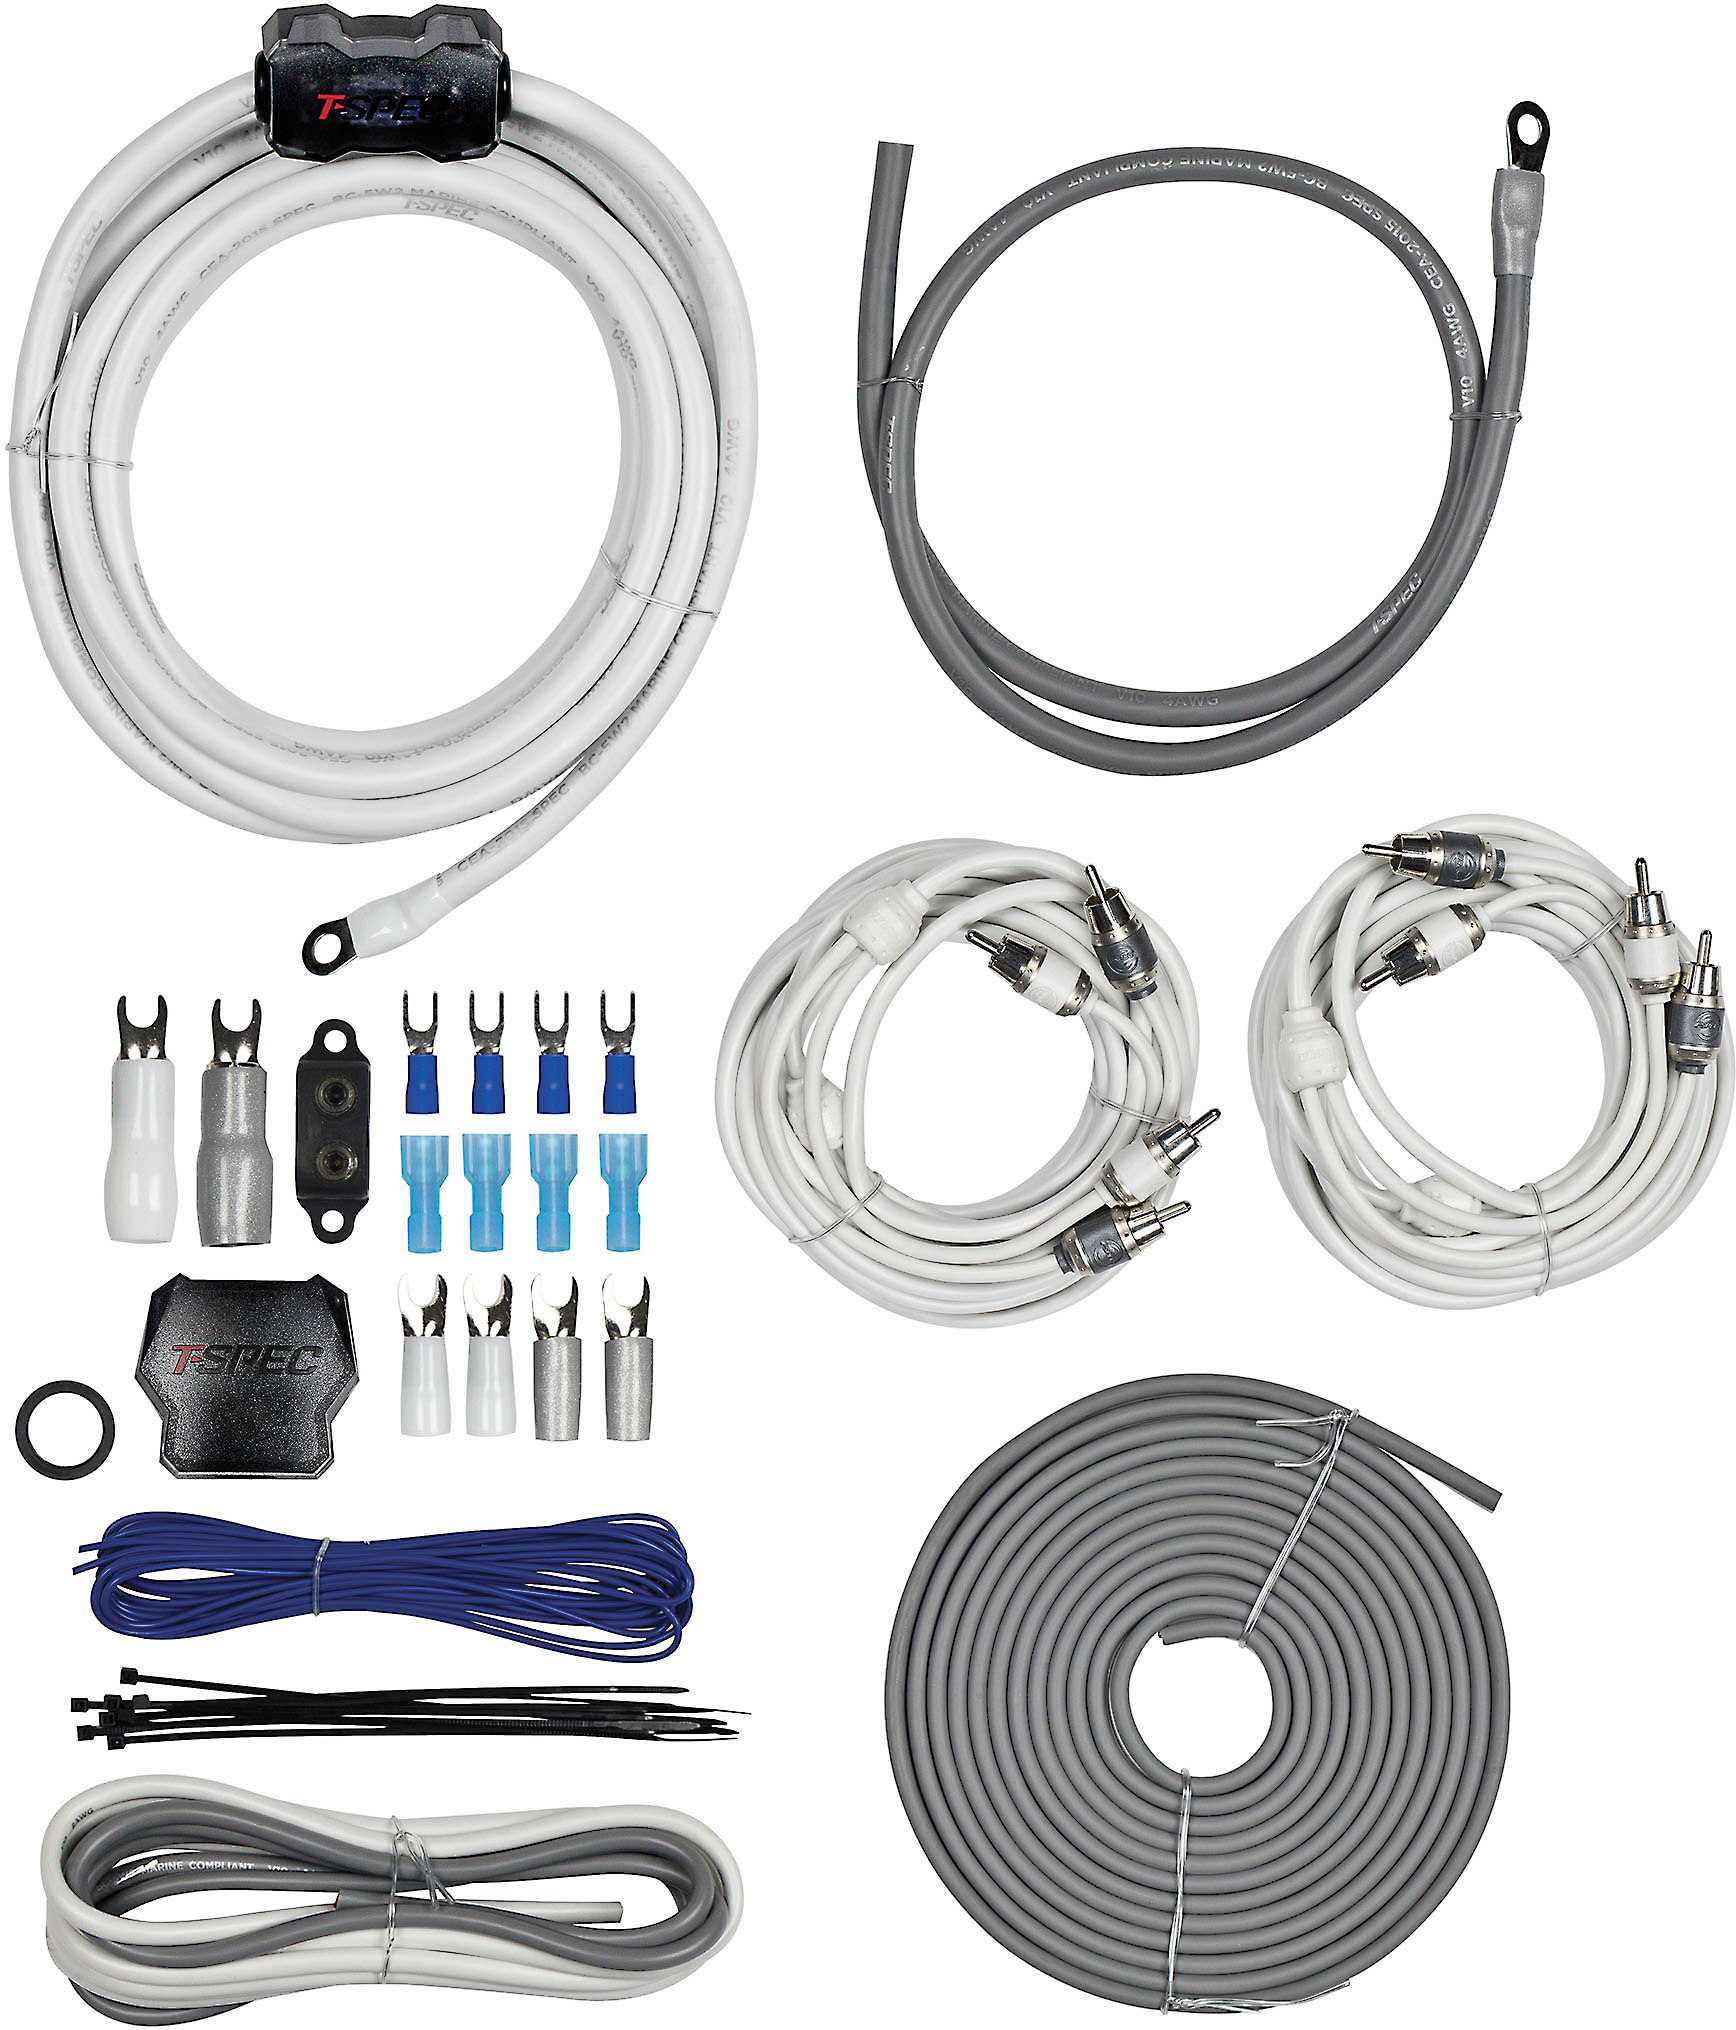 T-Spec 4DAK Installation Kit 4-gauge dual amplifier wiring